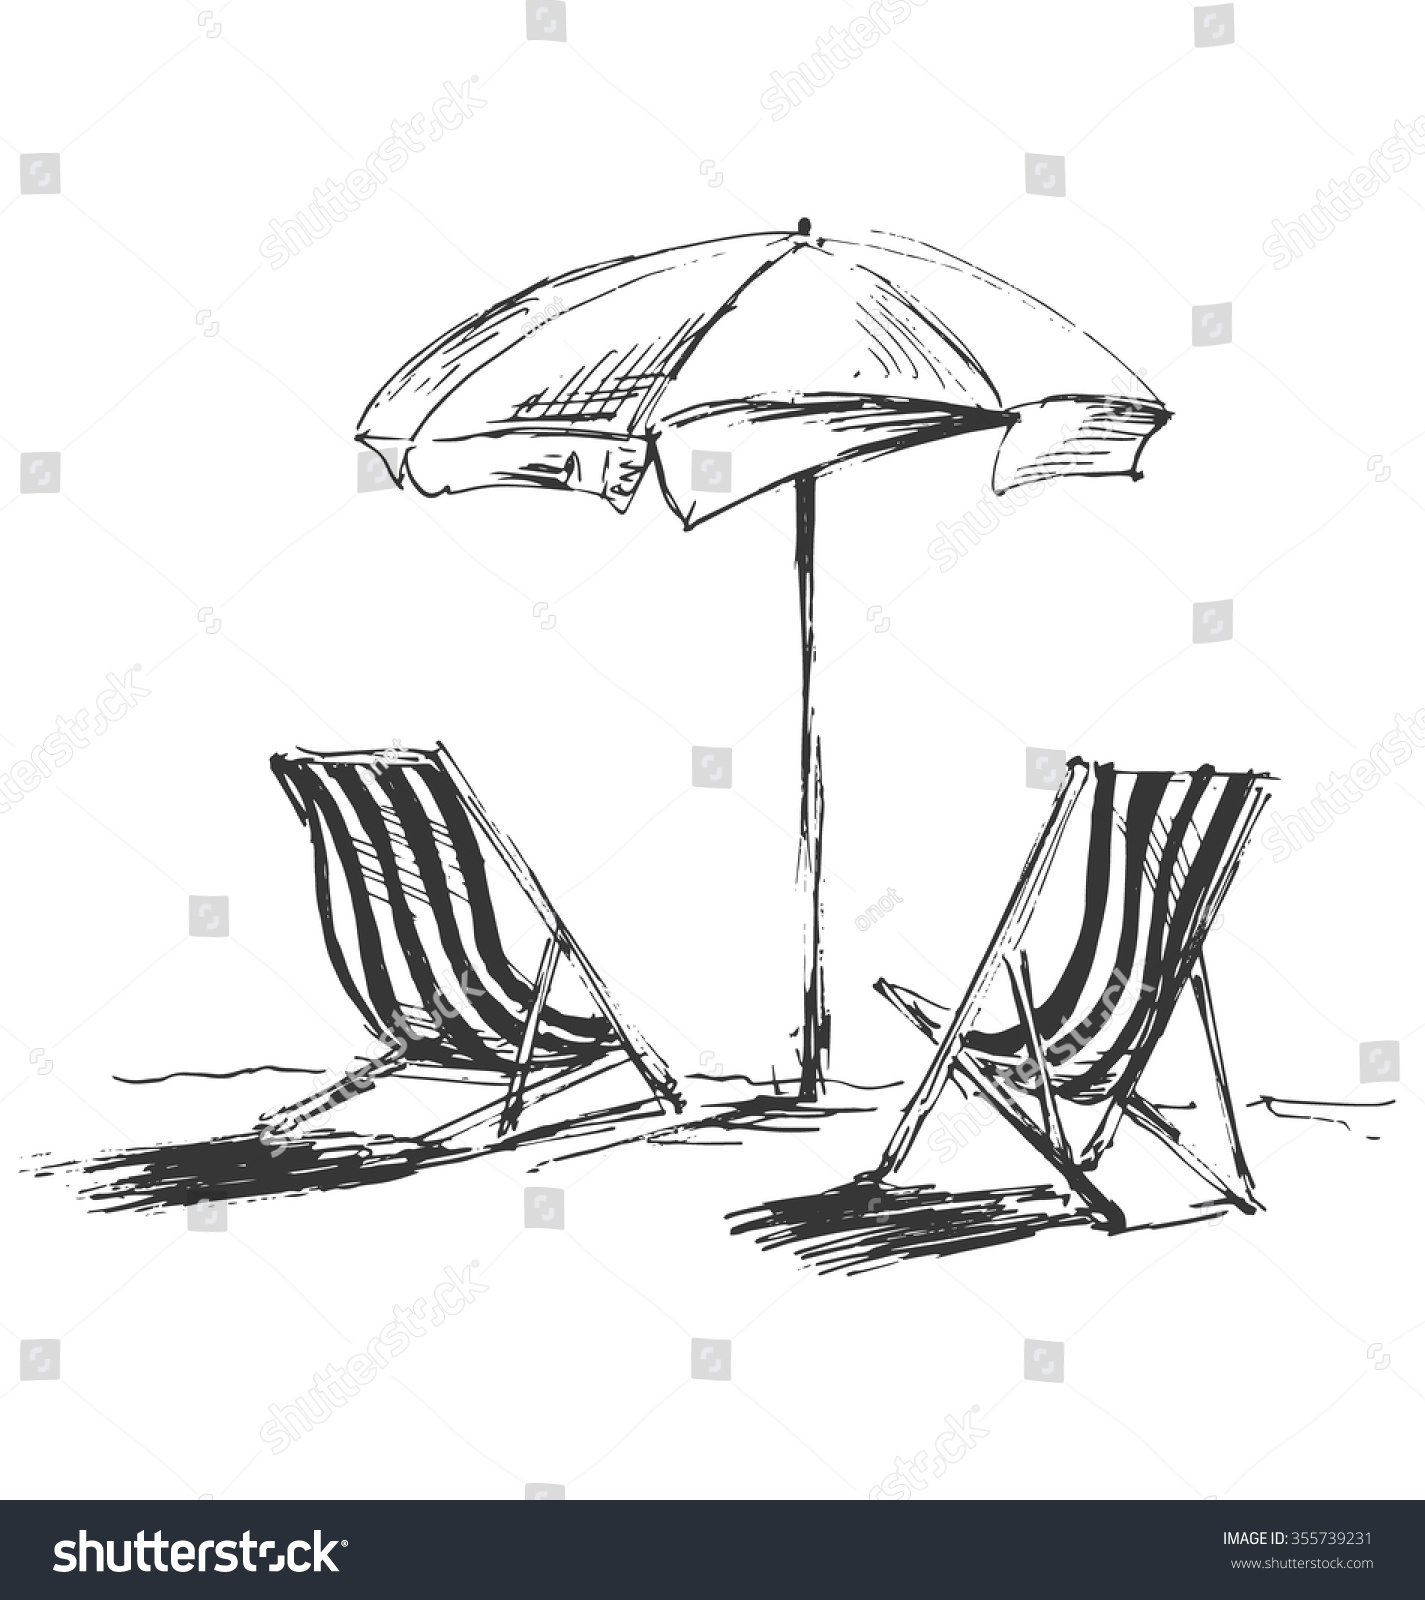 Beach lounge chair drawing - Hand Sketch With Beach Chairs And Parasols